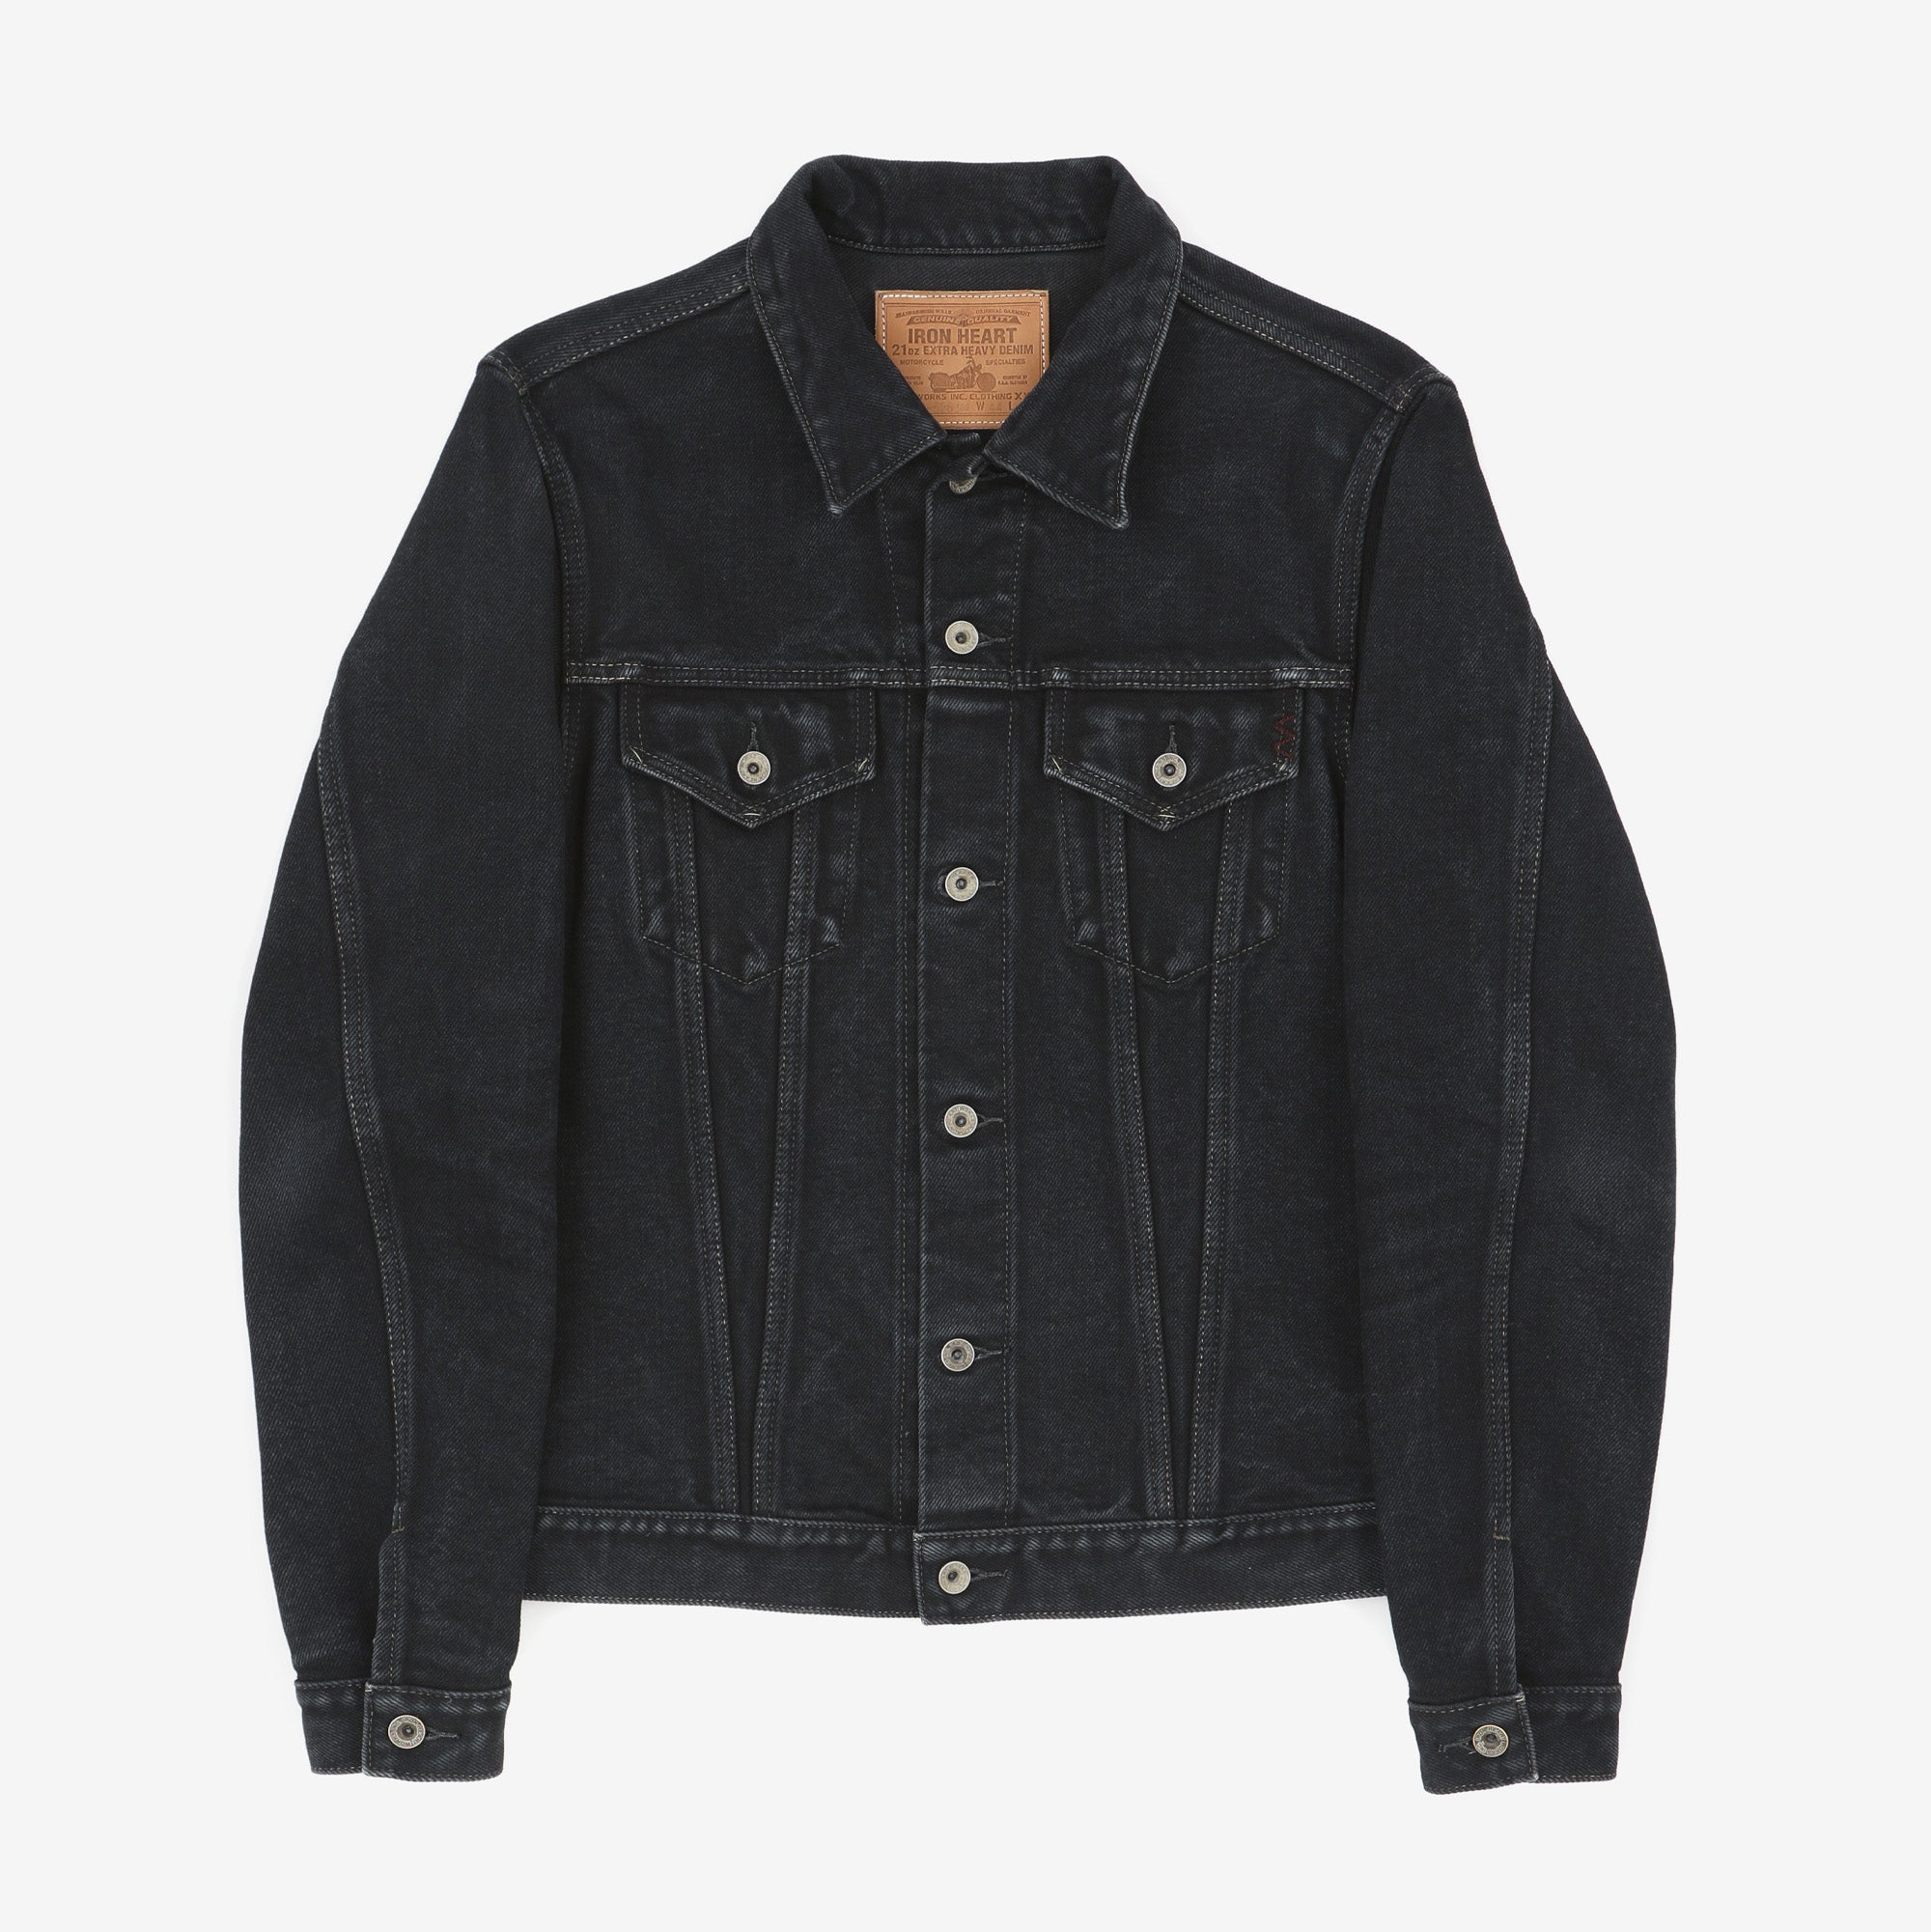 IH-526JOD 21oz Denim Jacket